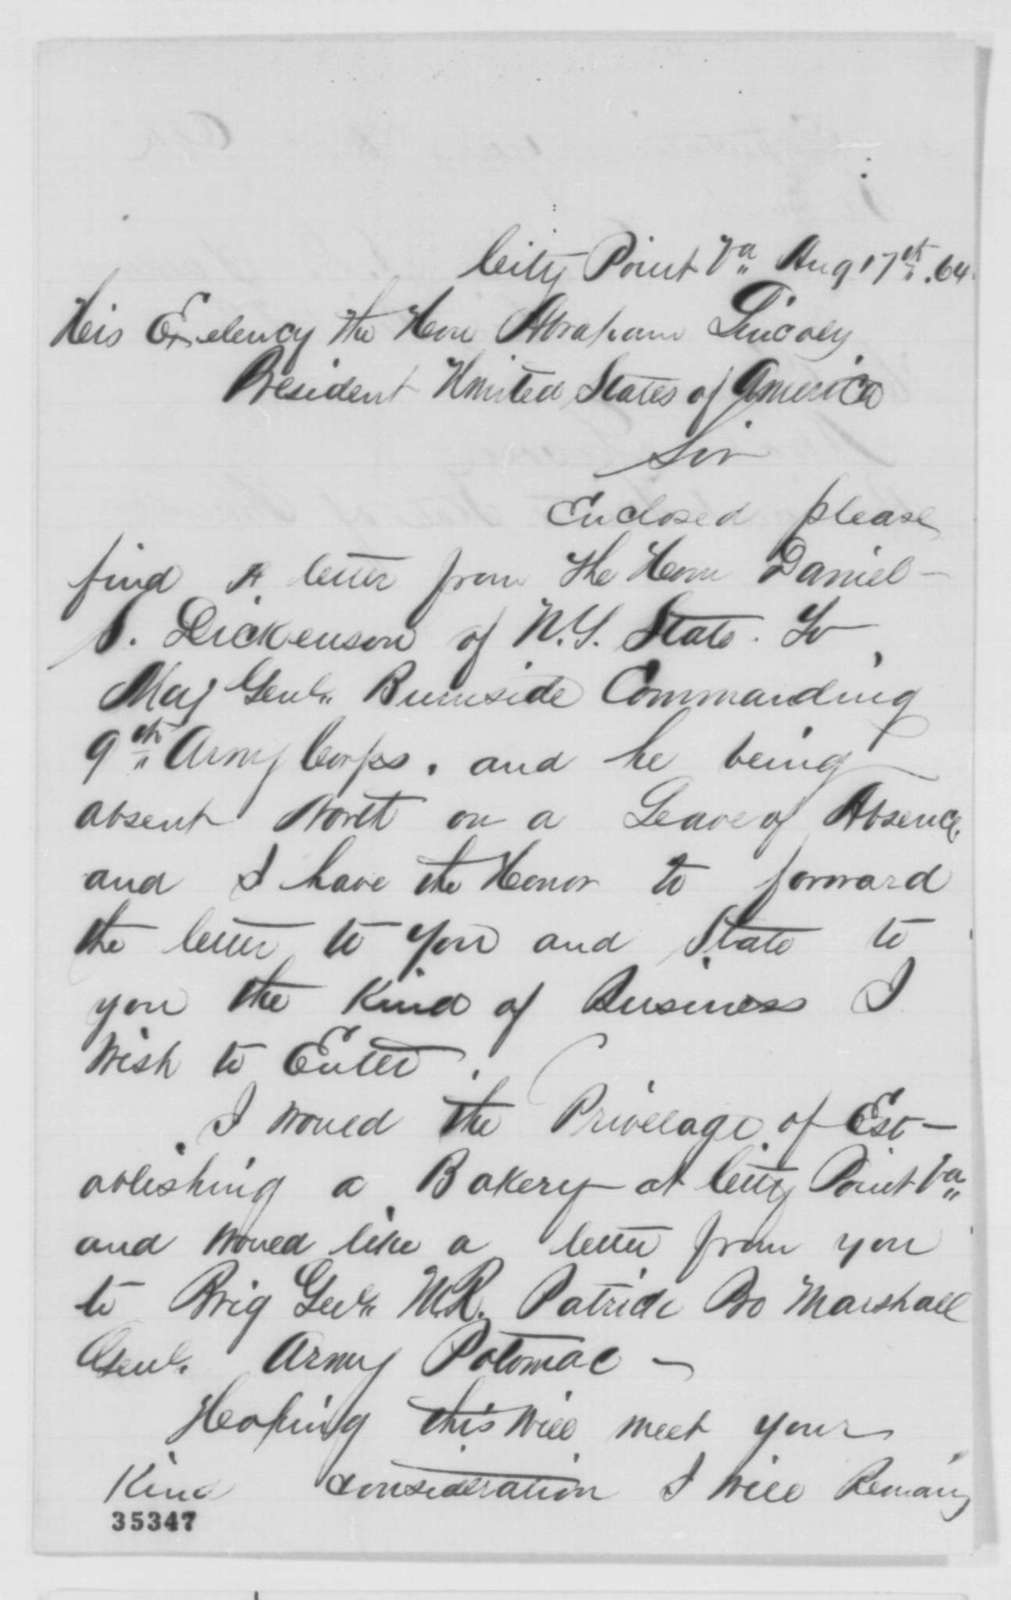 Daniel S. D. Baldwin to Abraham Lincoln, Wednesday, August 17, 1864  (Cover letter)